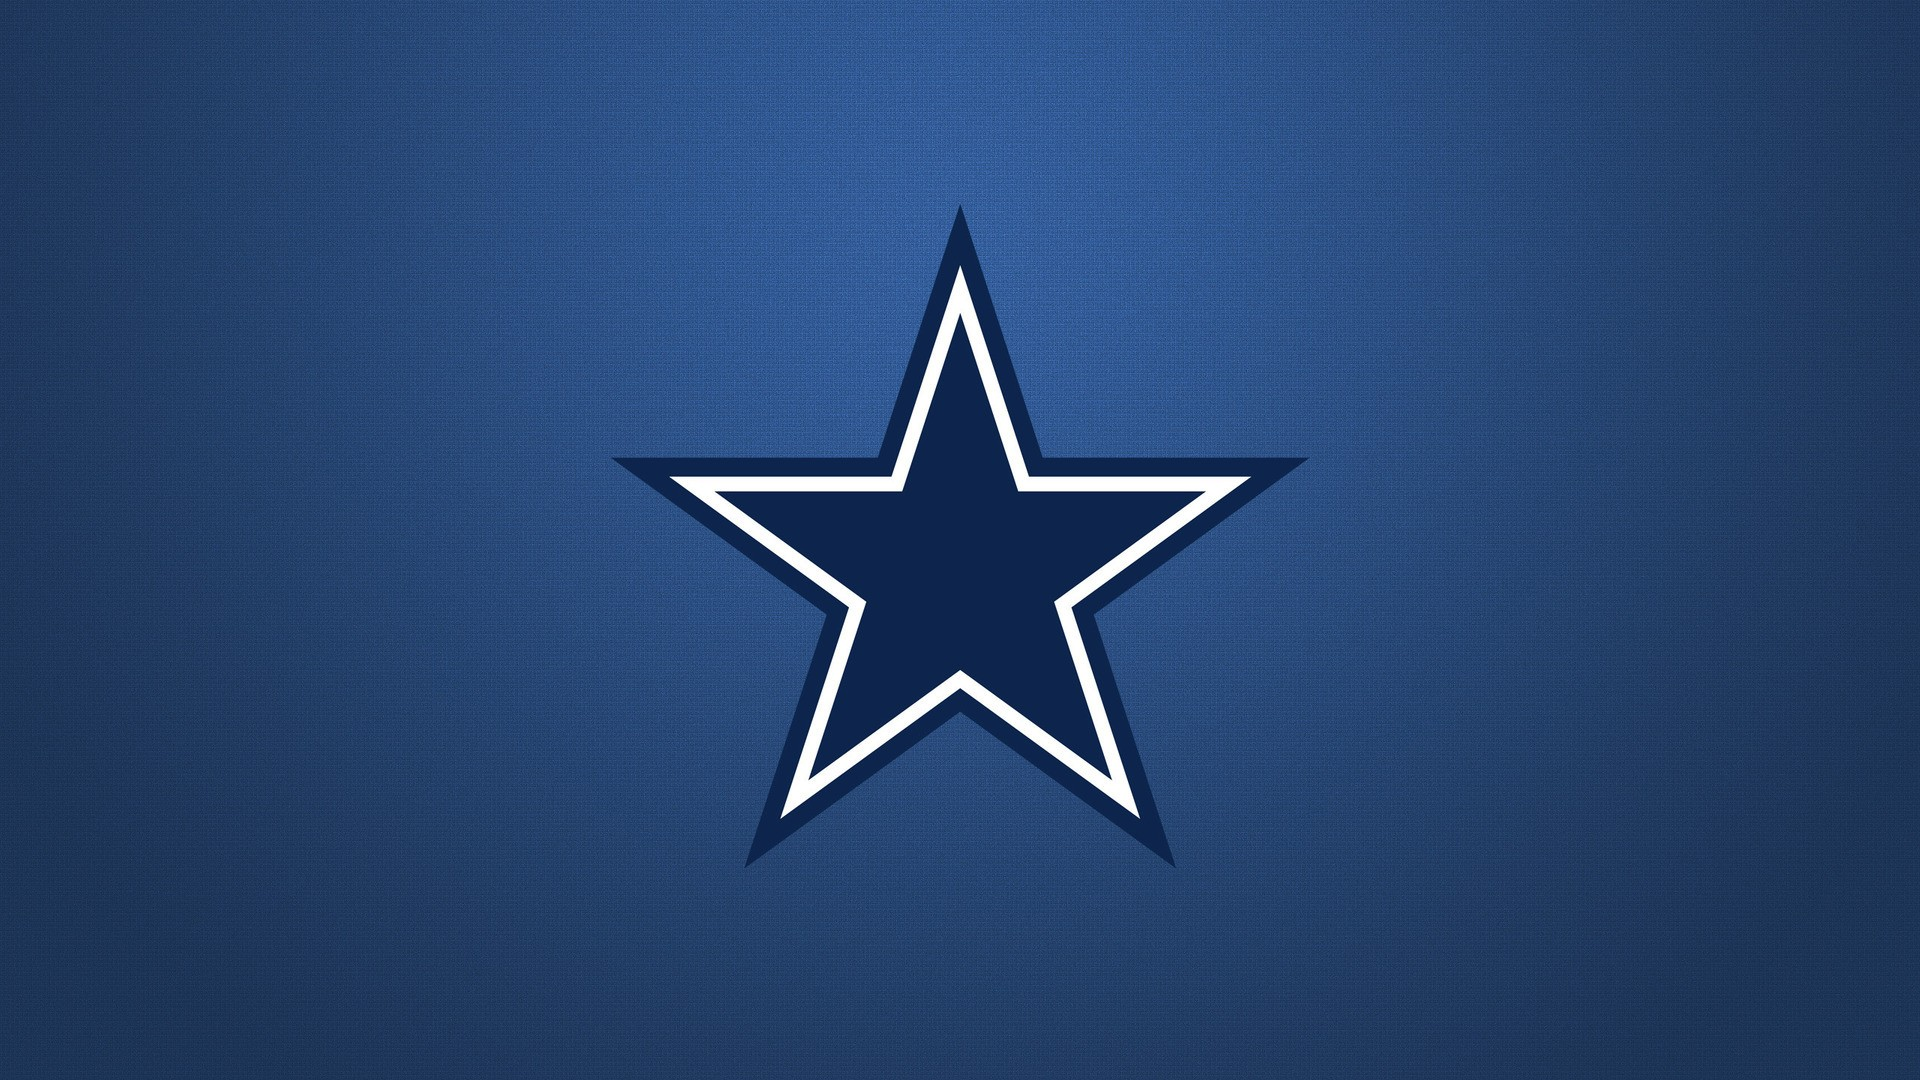 wallpaper cowboys dallas steelers images 1920x1080 1920x1080